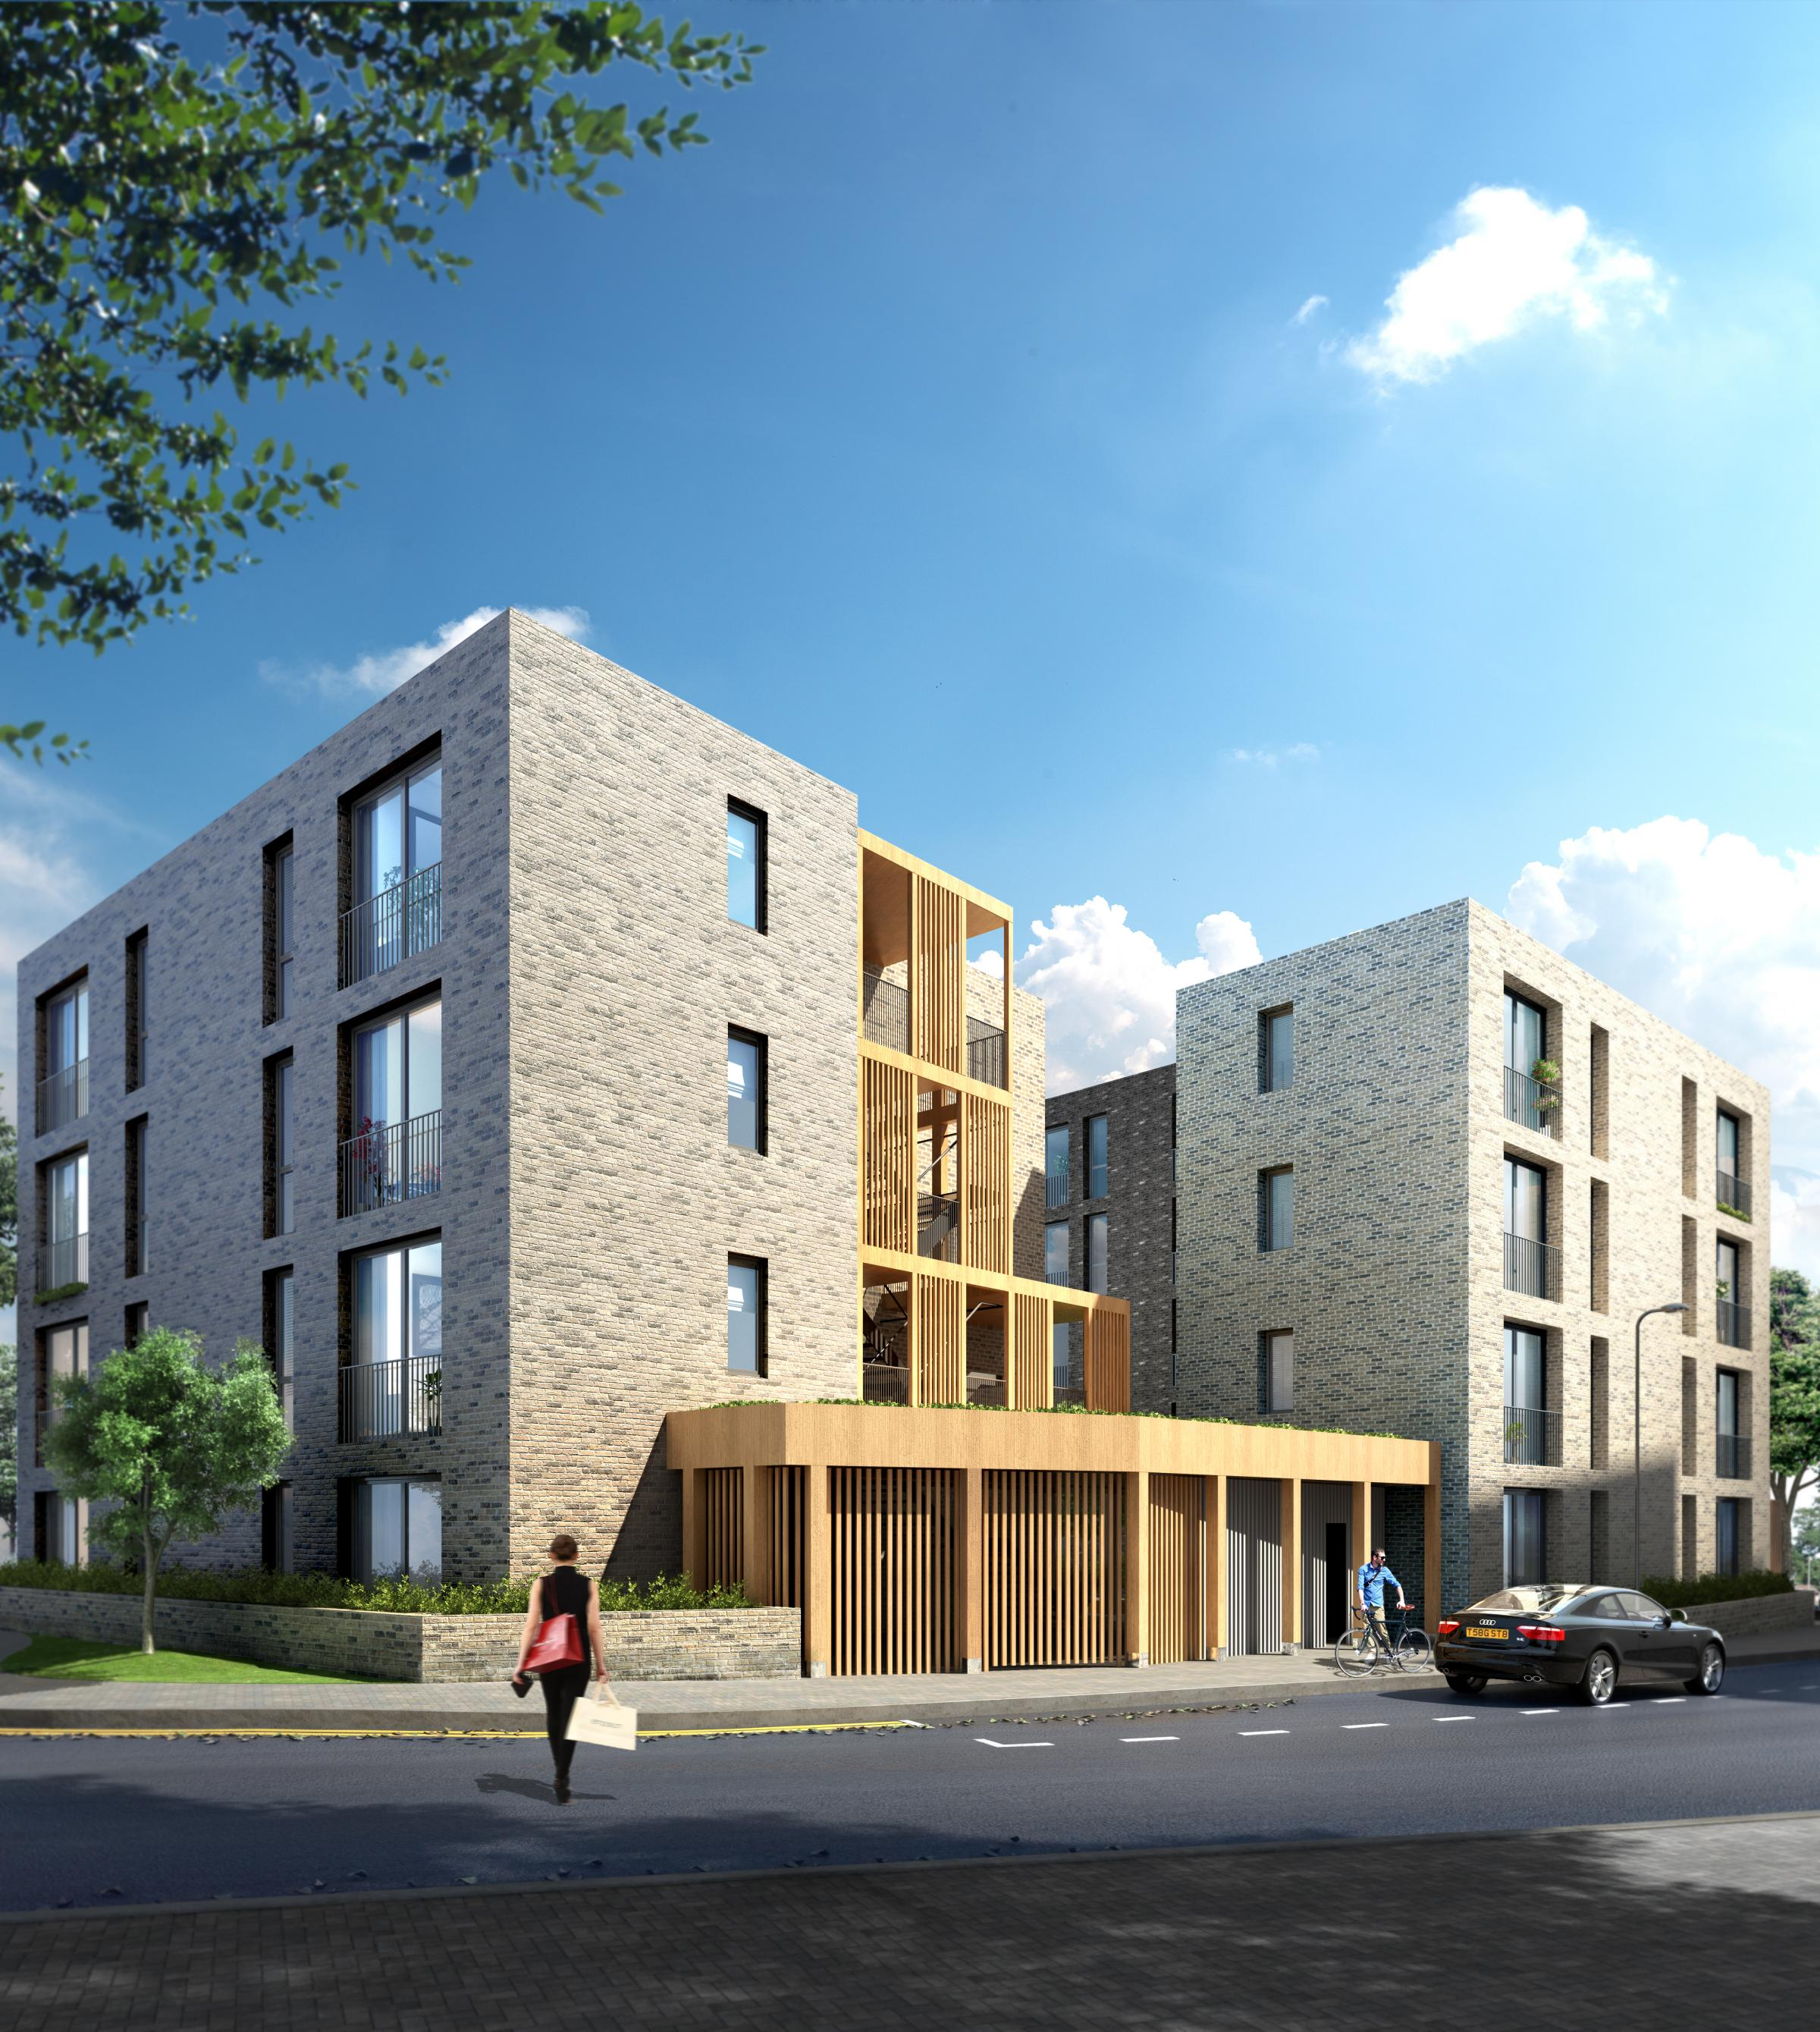 A rendor of another Pocket development in east London